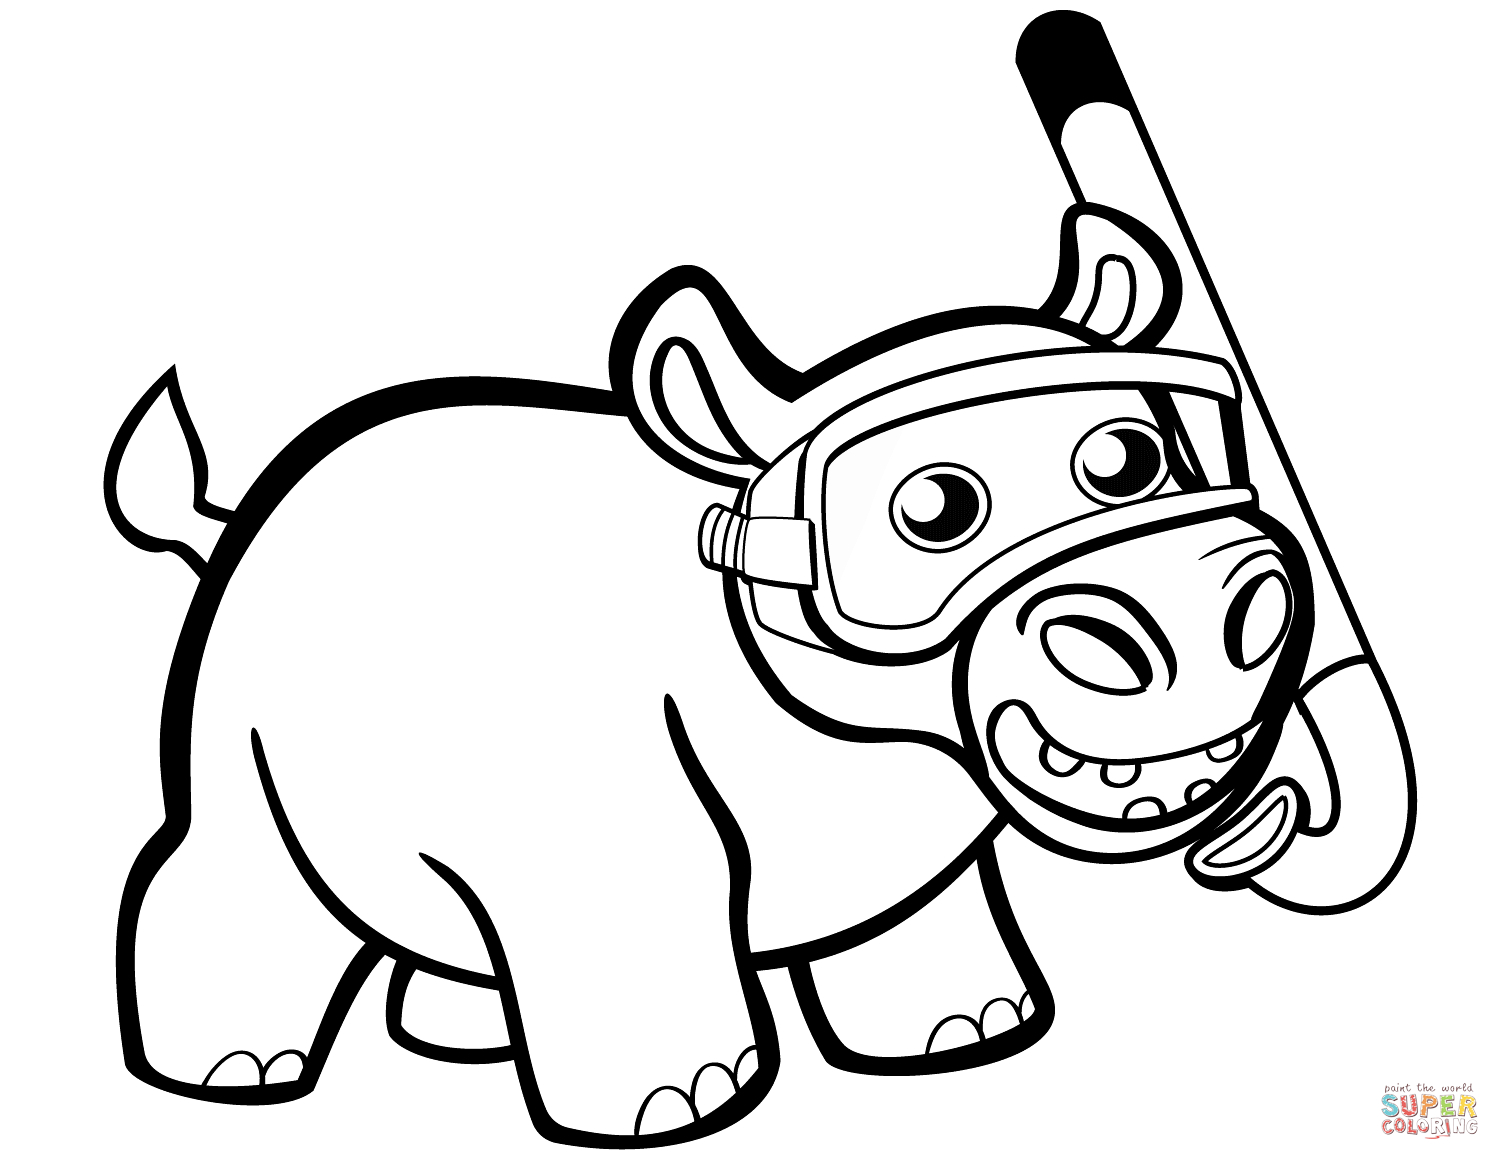 coloring hippo clipart cartoon hippo drawing at getdrawings free download coloring clipart hippo